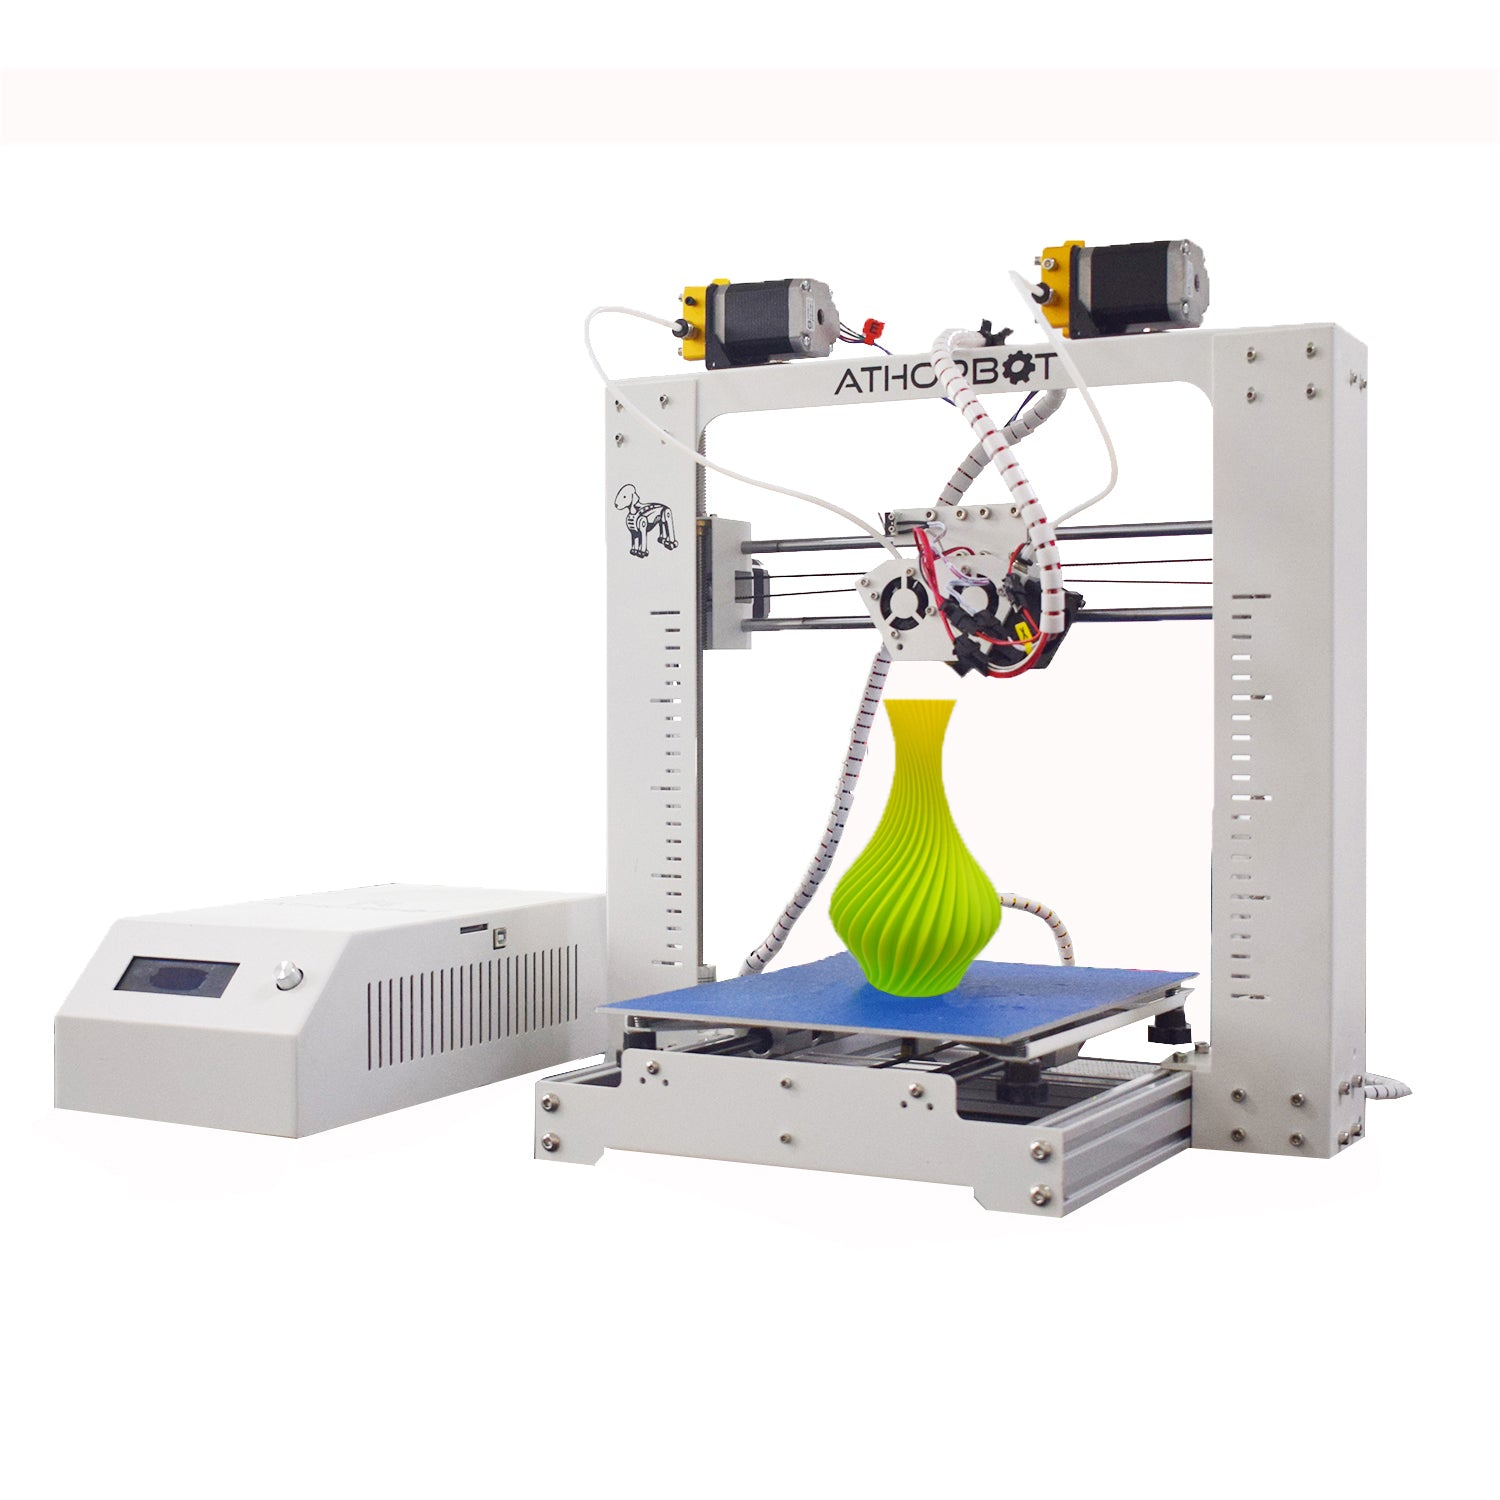 Athorbot Brother 3D Printer 24V Ready To Print PLA ABS